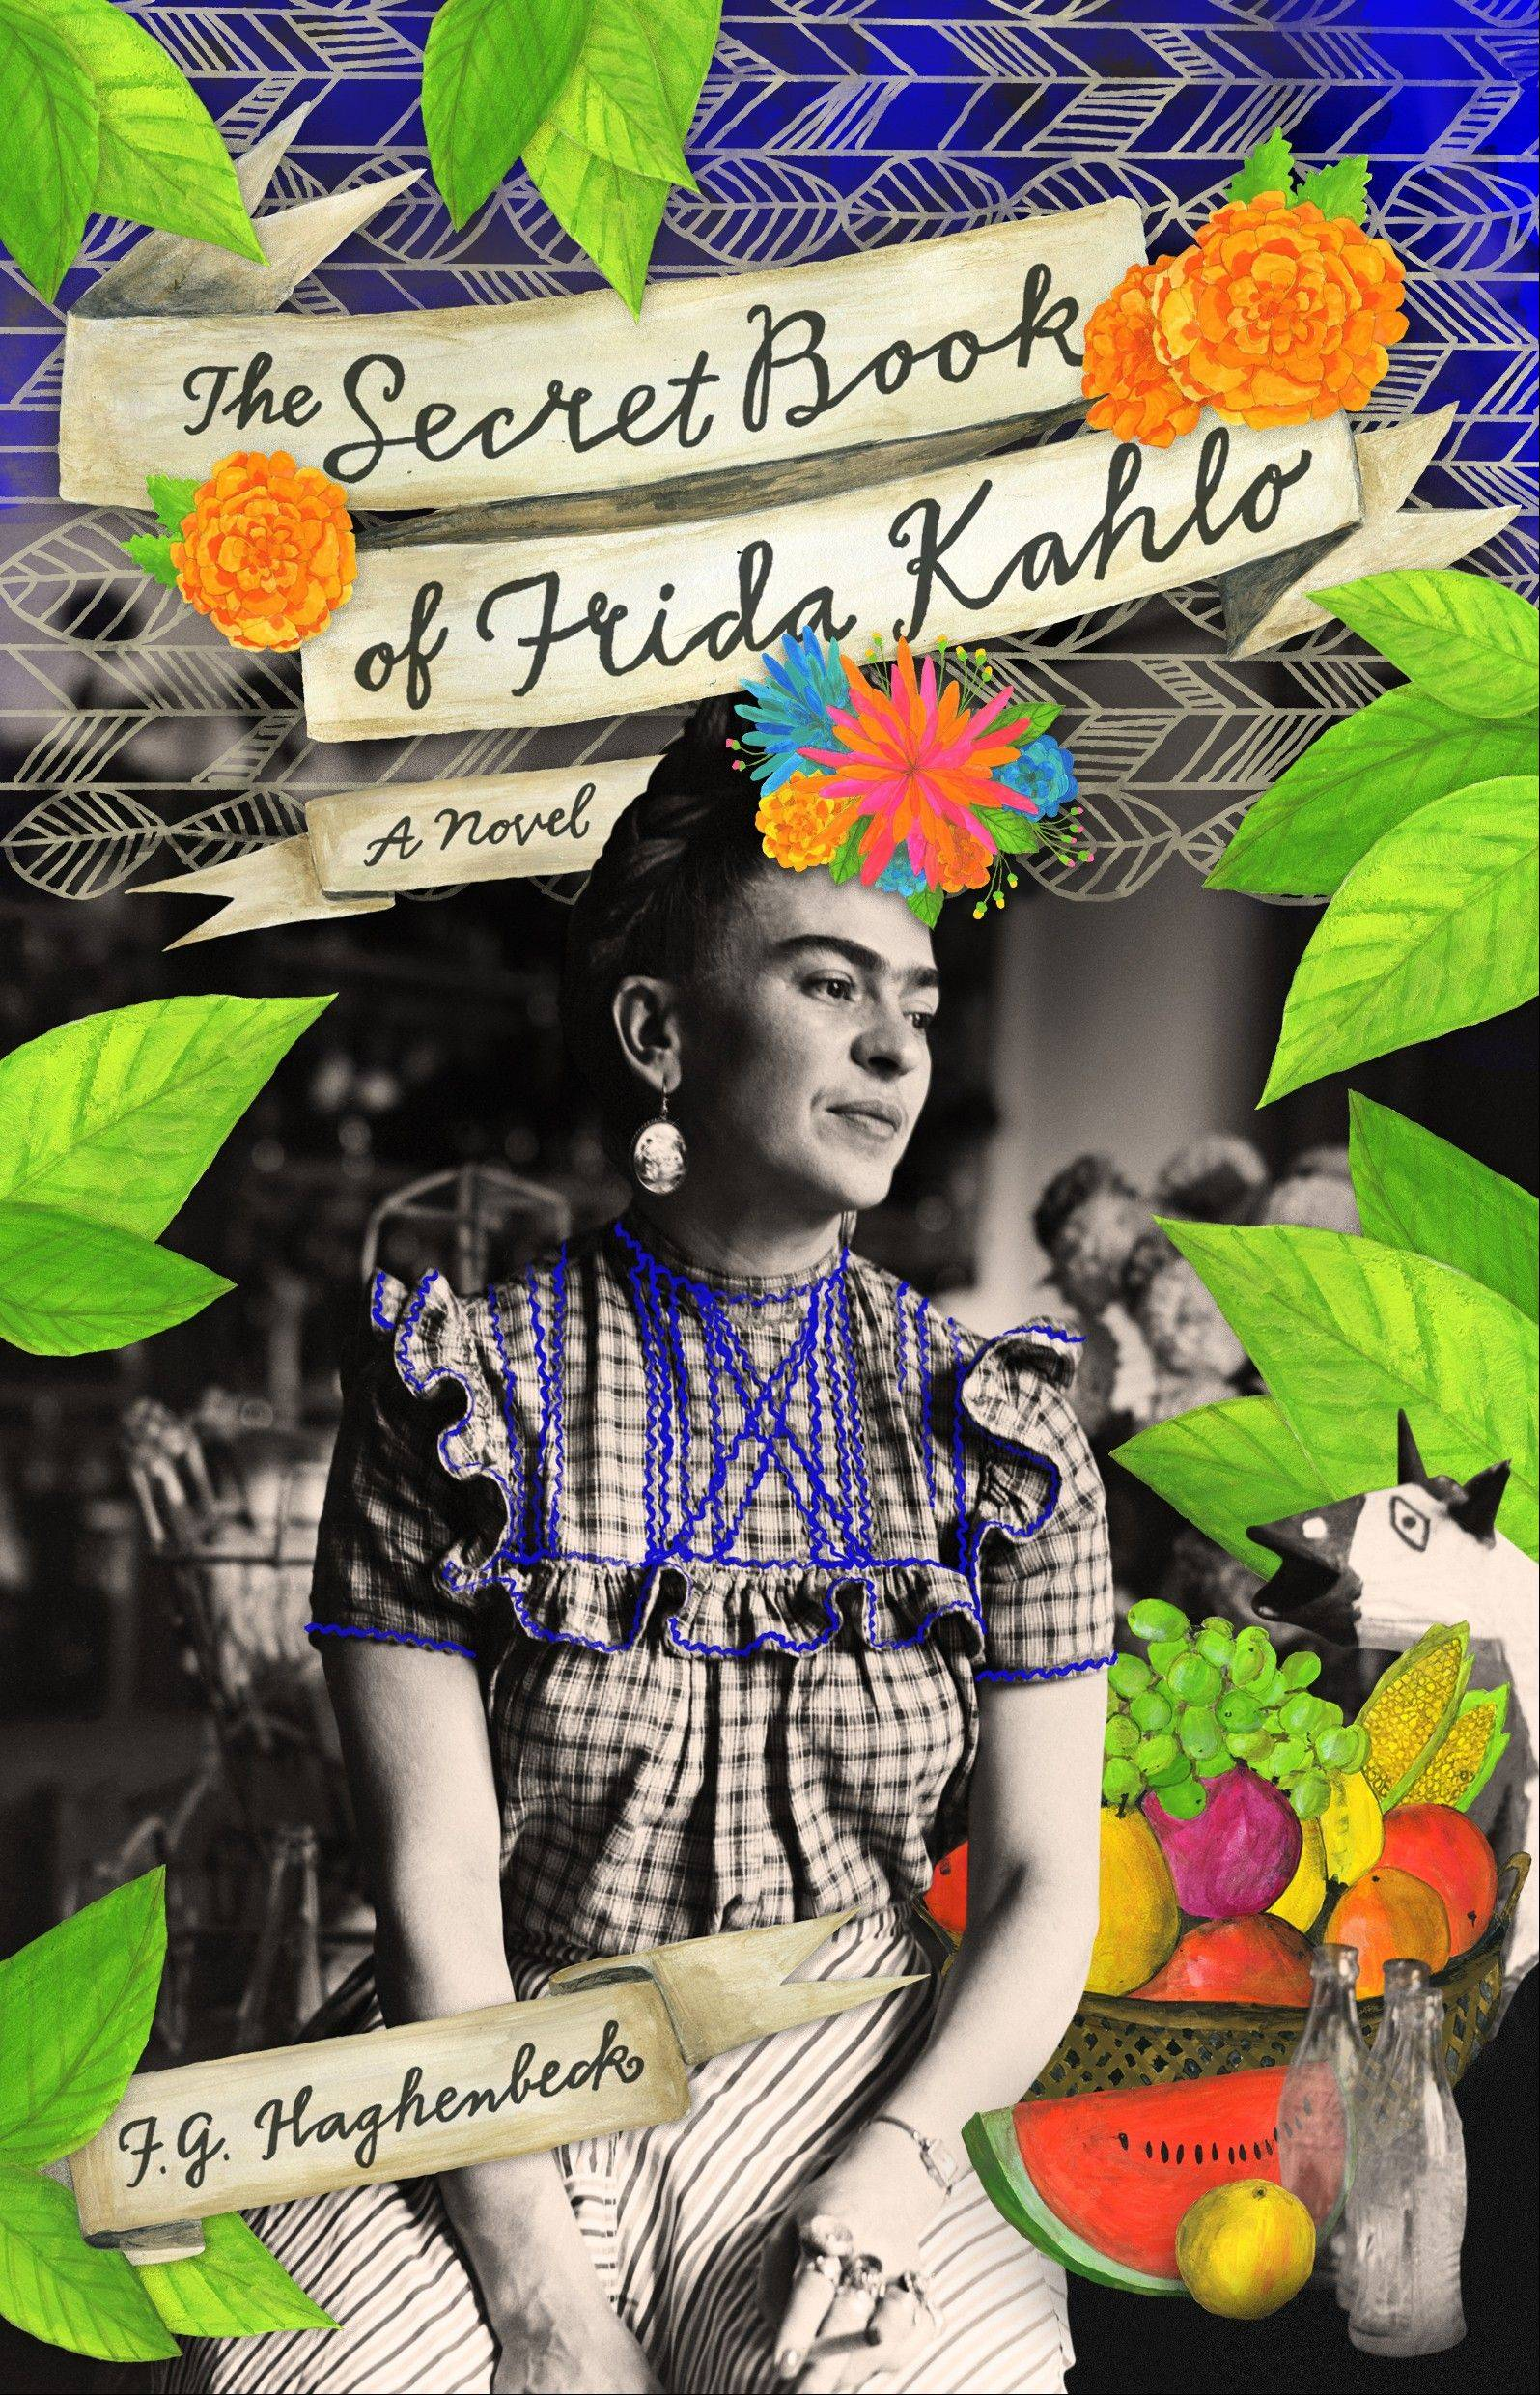 �The Secret Book of Frida Kahlo� by F. G. Haghenbeck